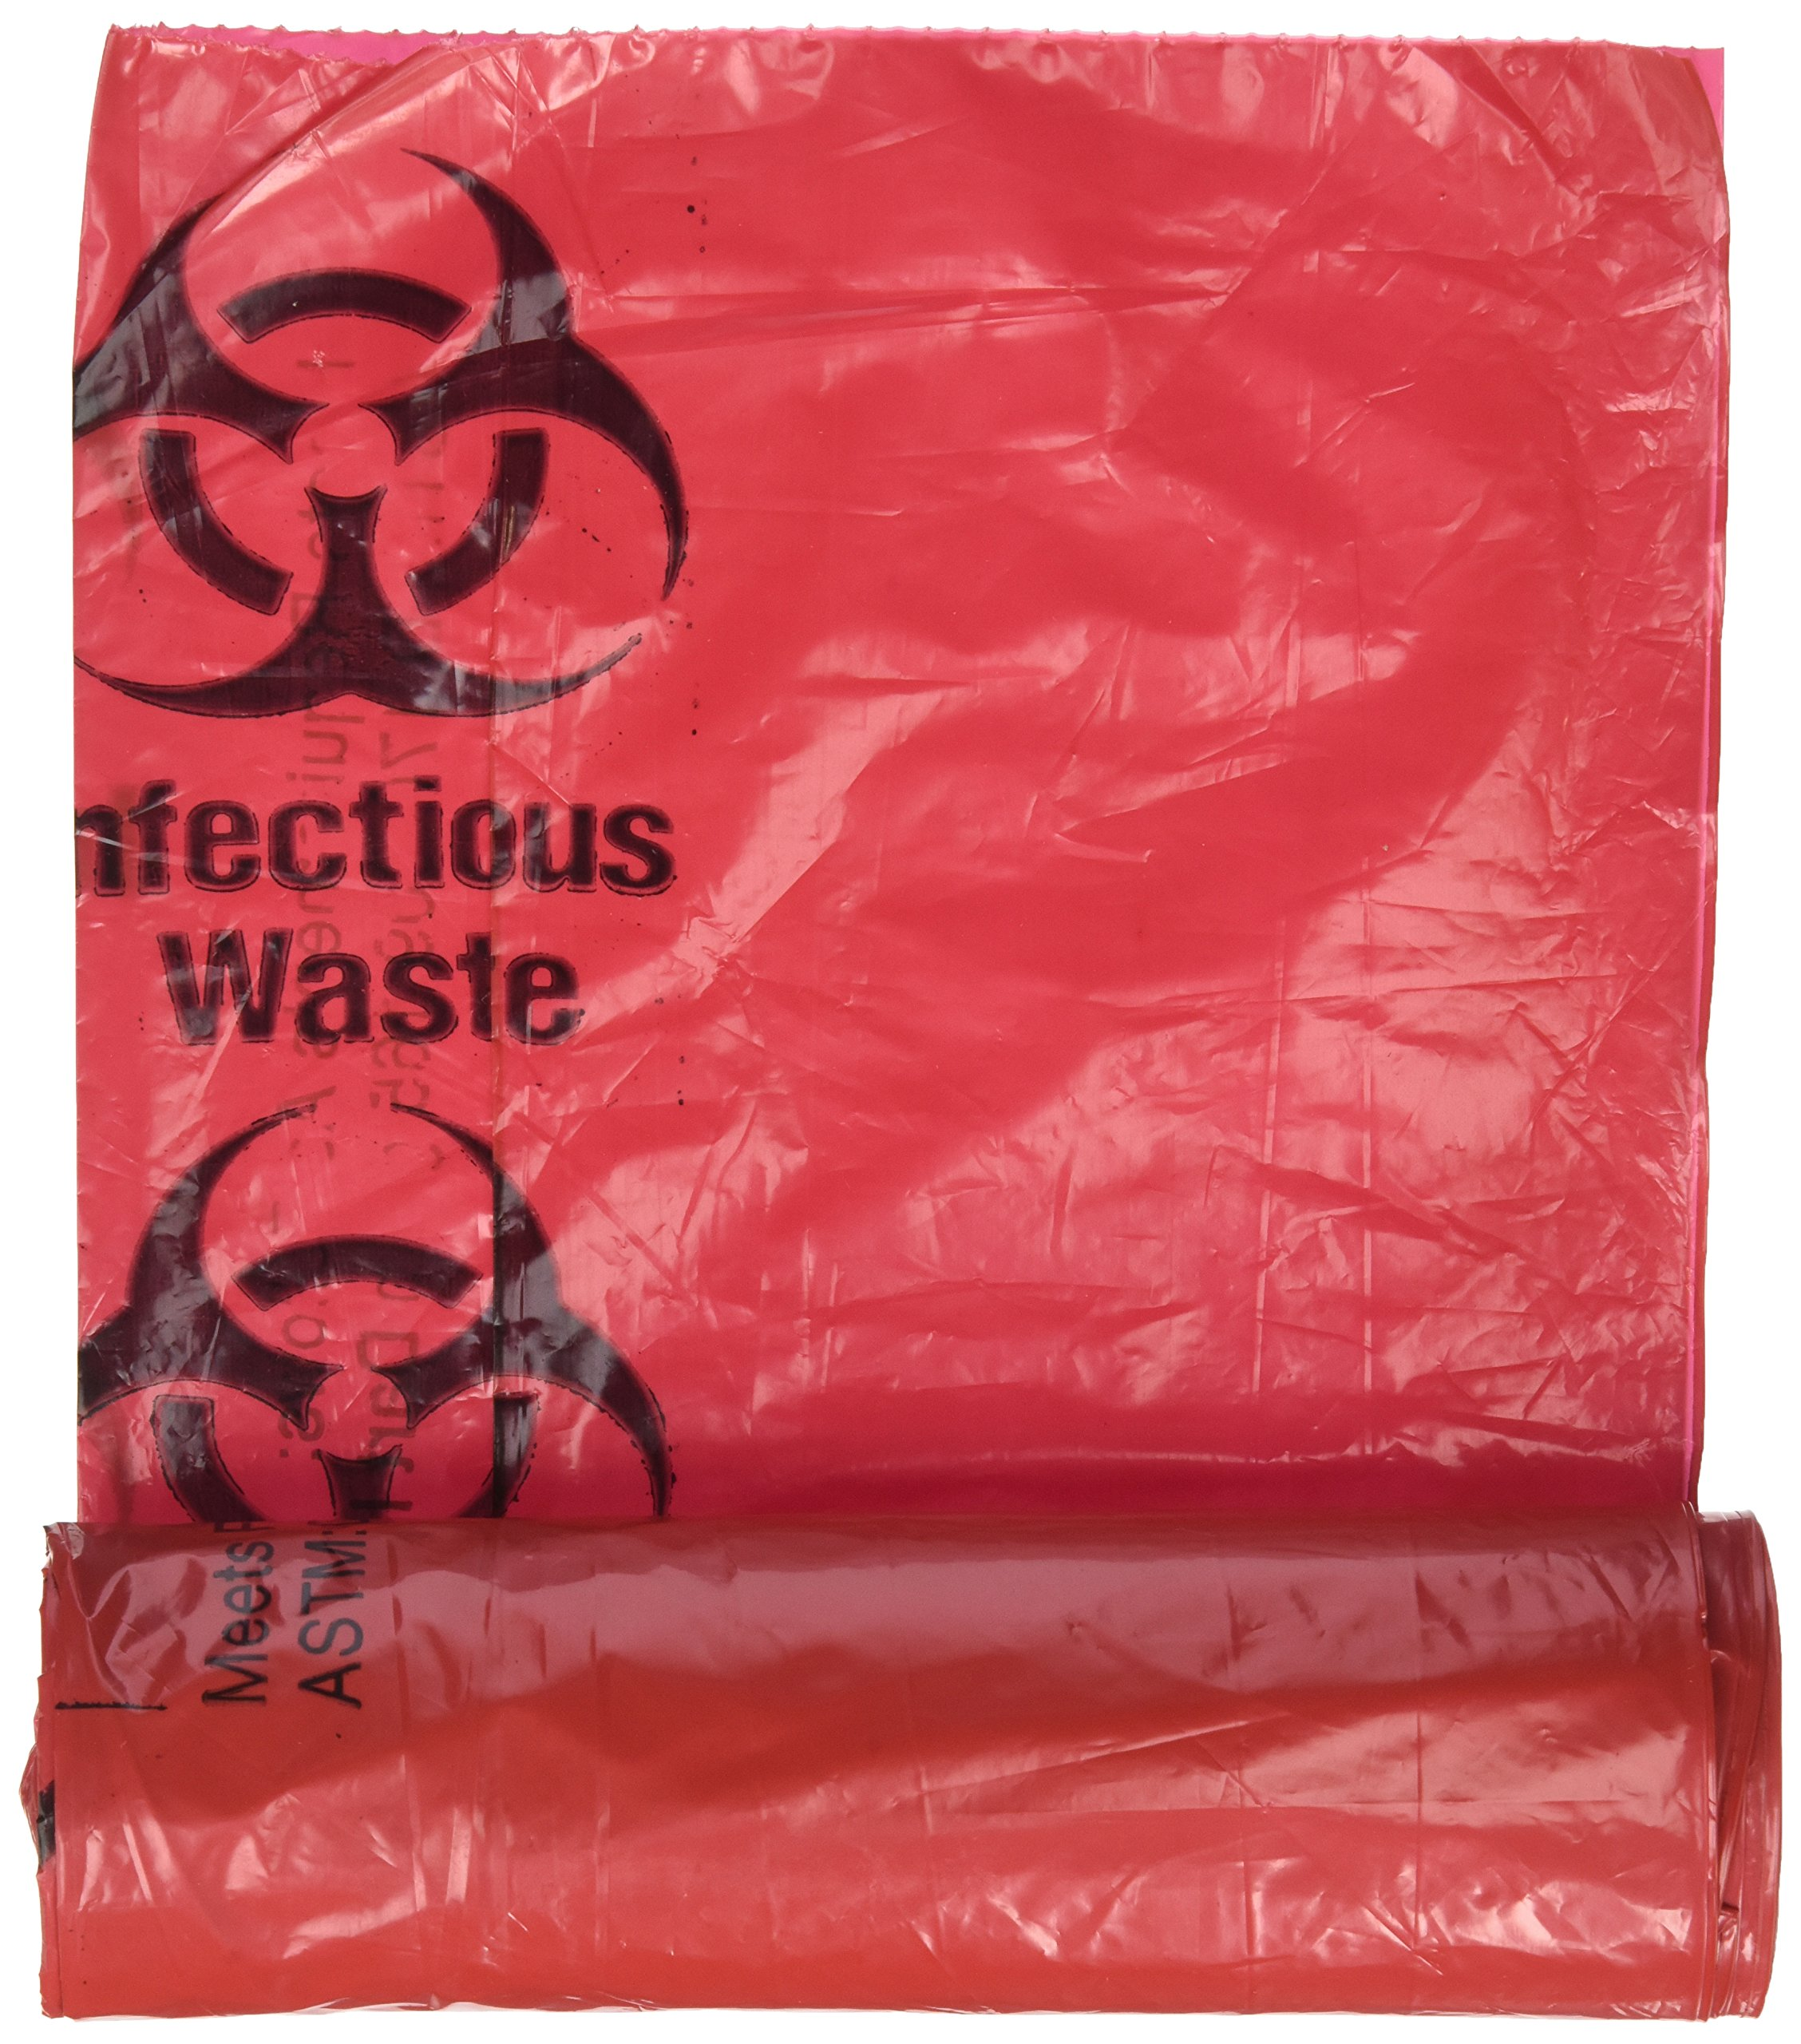 Medical Action Infectious Waste Bag, Red, 3 Gallon, 14.5'' x 19'', 20/Roll